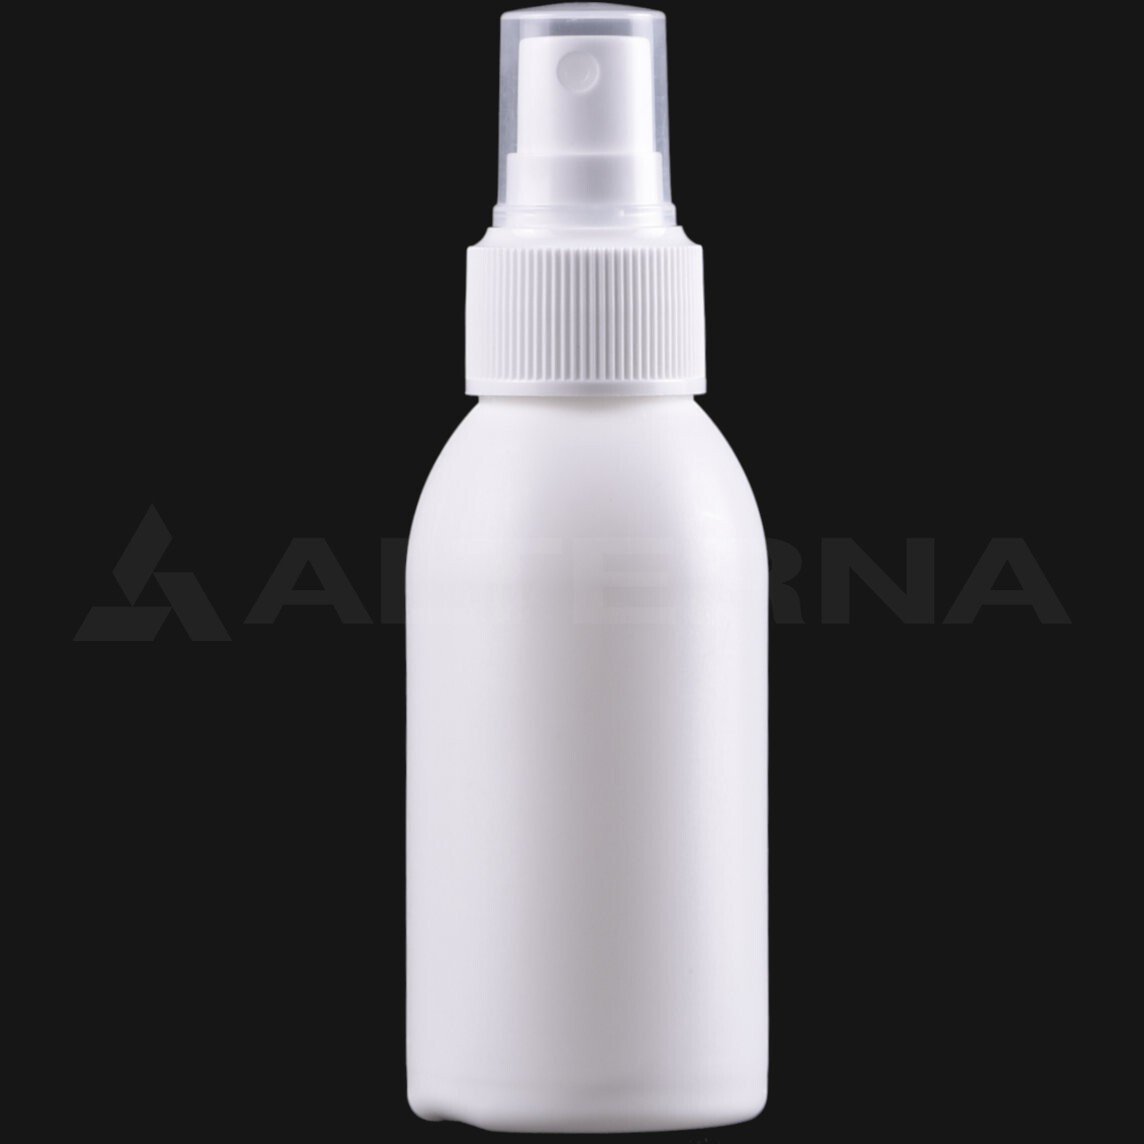 100 ml HDPE Bottle with 24 mm Sprayer